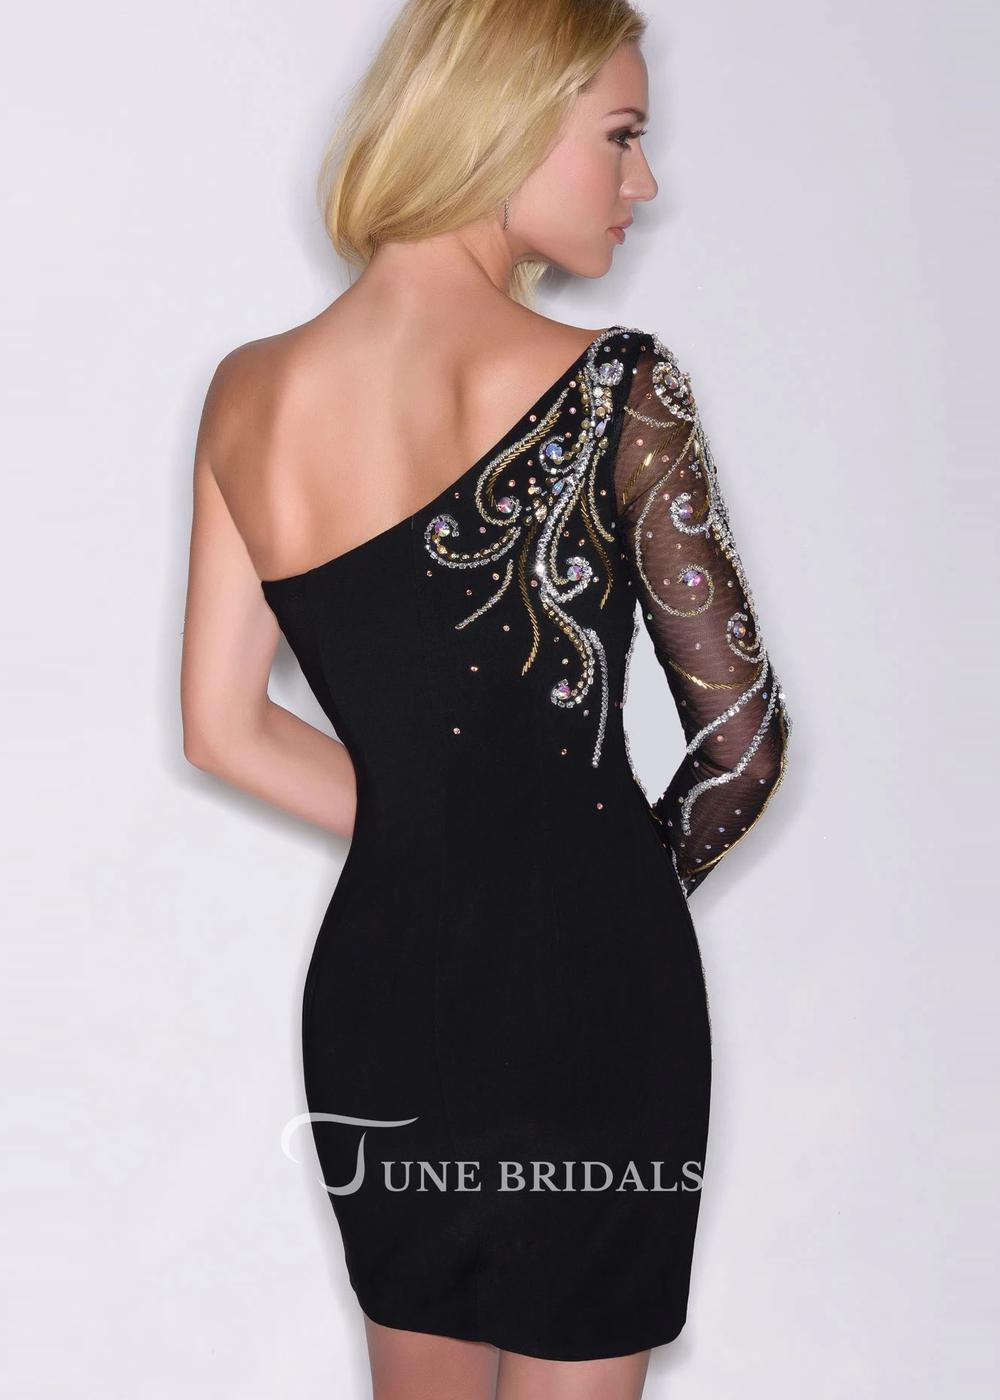 June Bridals product